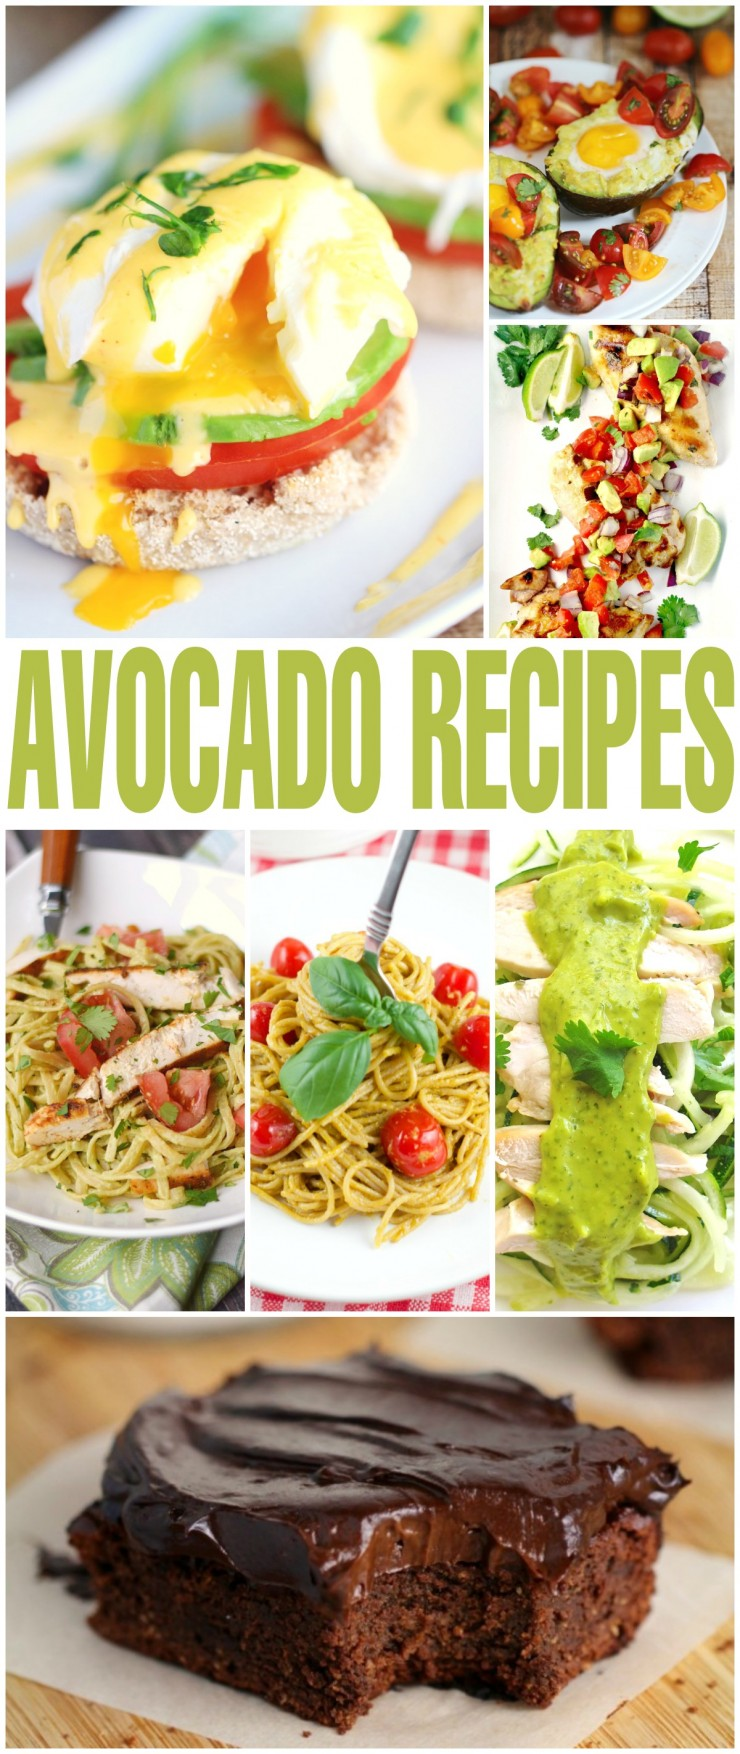 Branch out from the typical guacamole recipes and check out these healthy avocado recipes that cover everything from breakfast to dessert and everything in between!